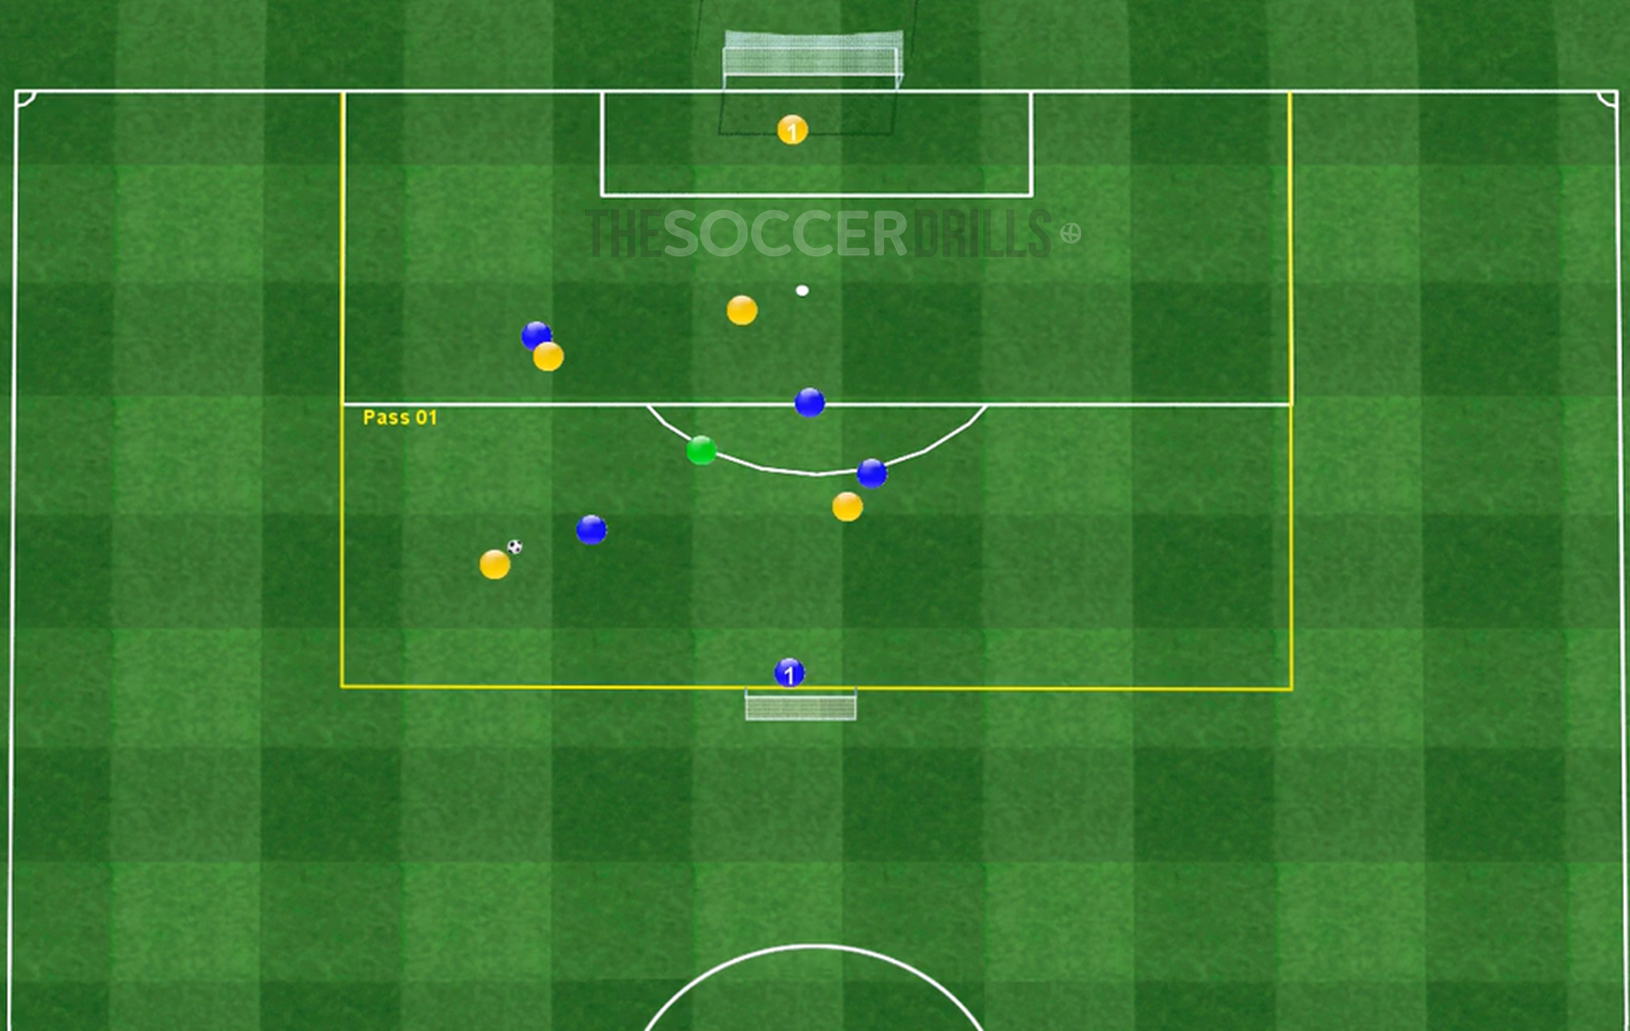 Soccer Drills for coaches, Soccer Drills for kds, Tactical Football Exercises, Tacical Soccer Drills, Drills for counterattack, Possesion  possesion drills soccer, Small-Sided Soccer Games,